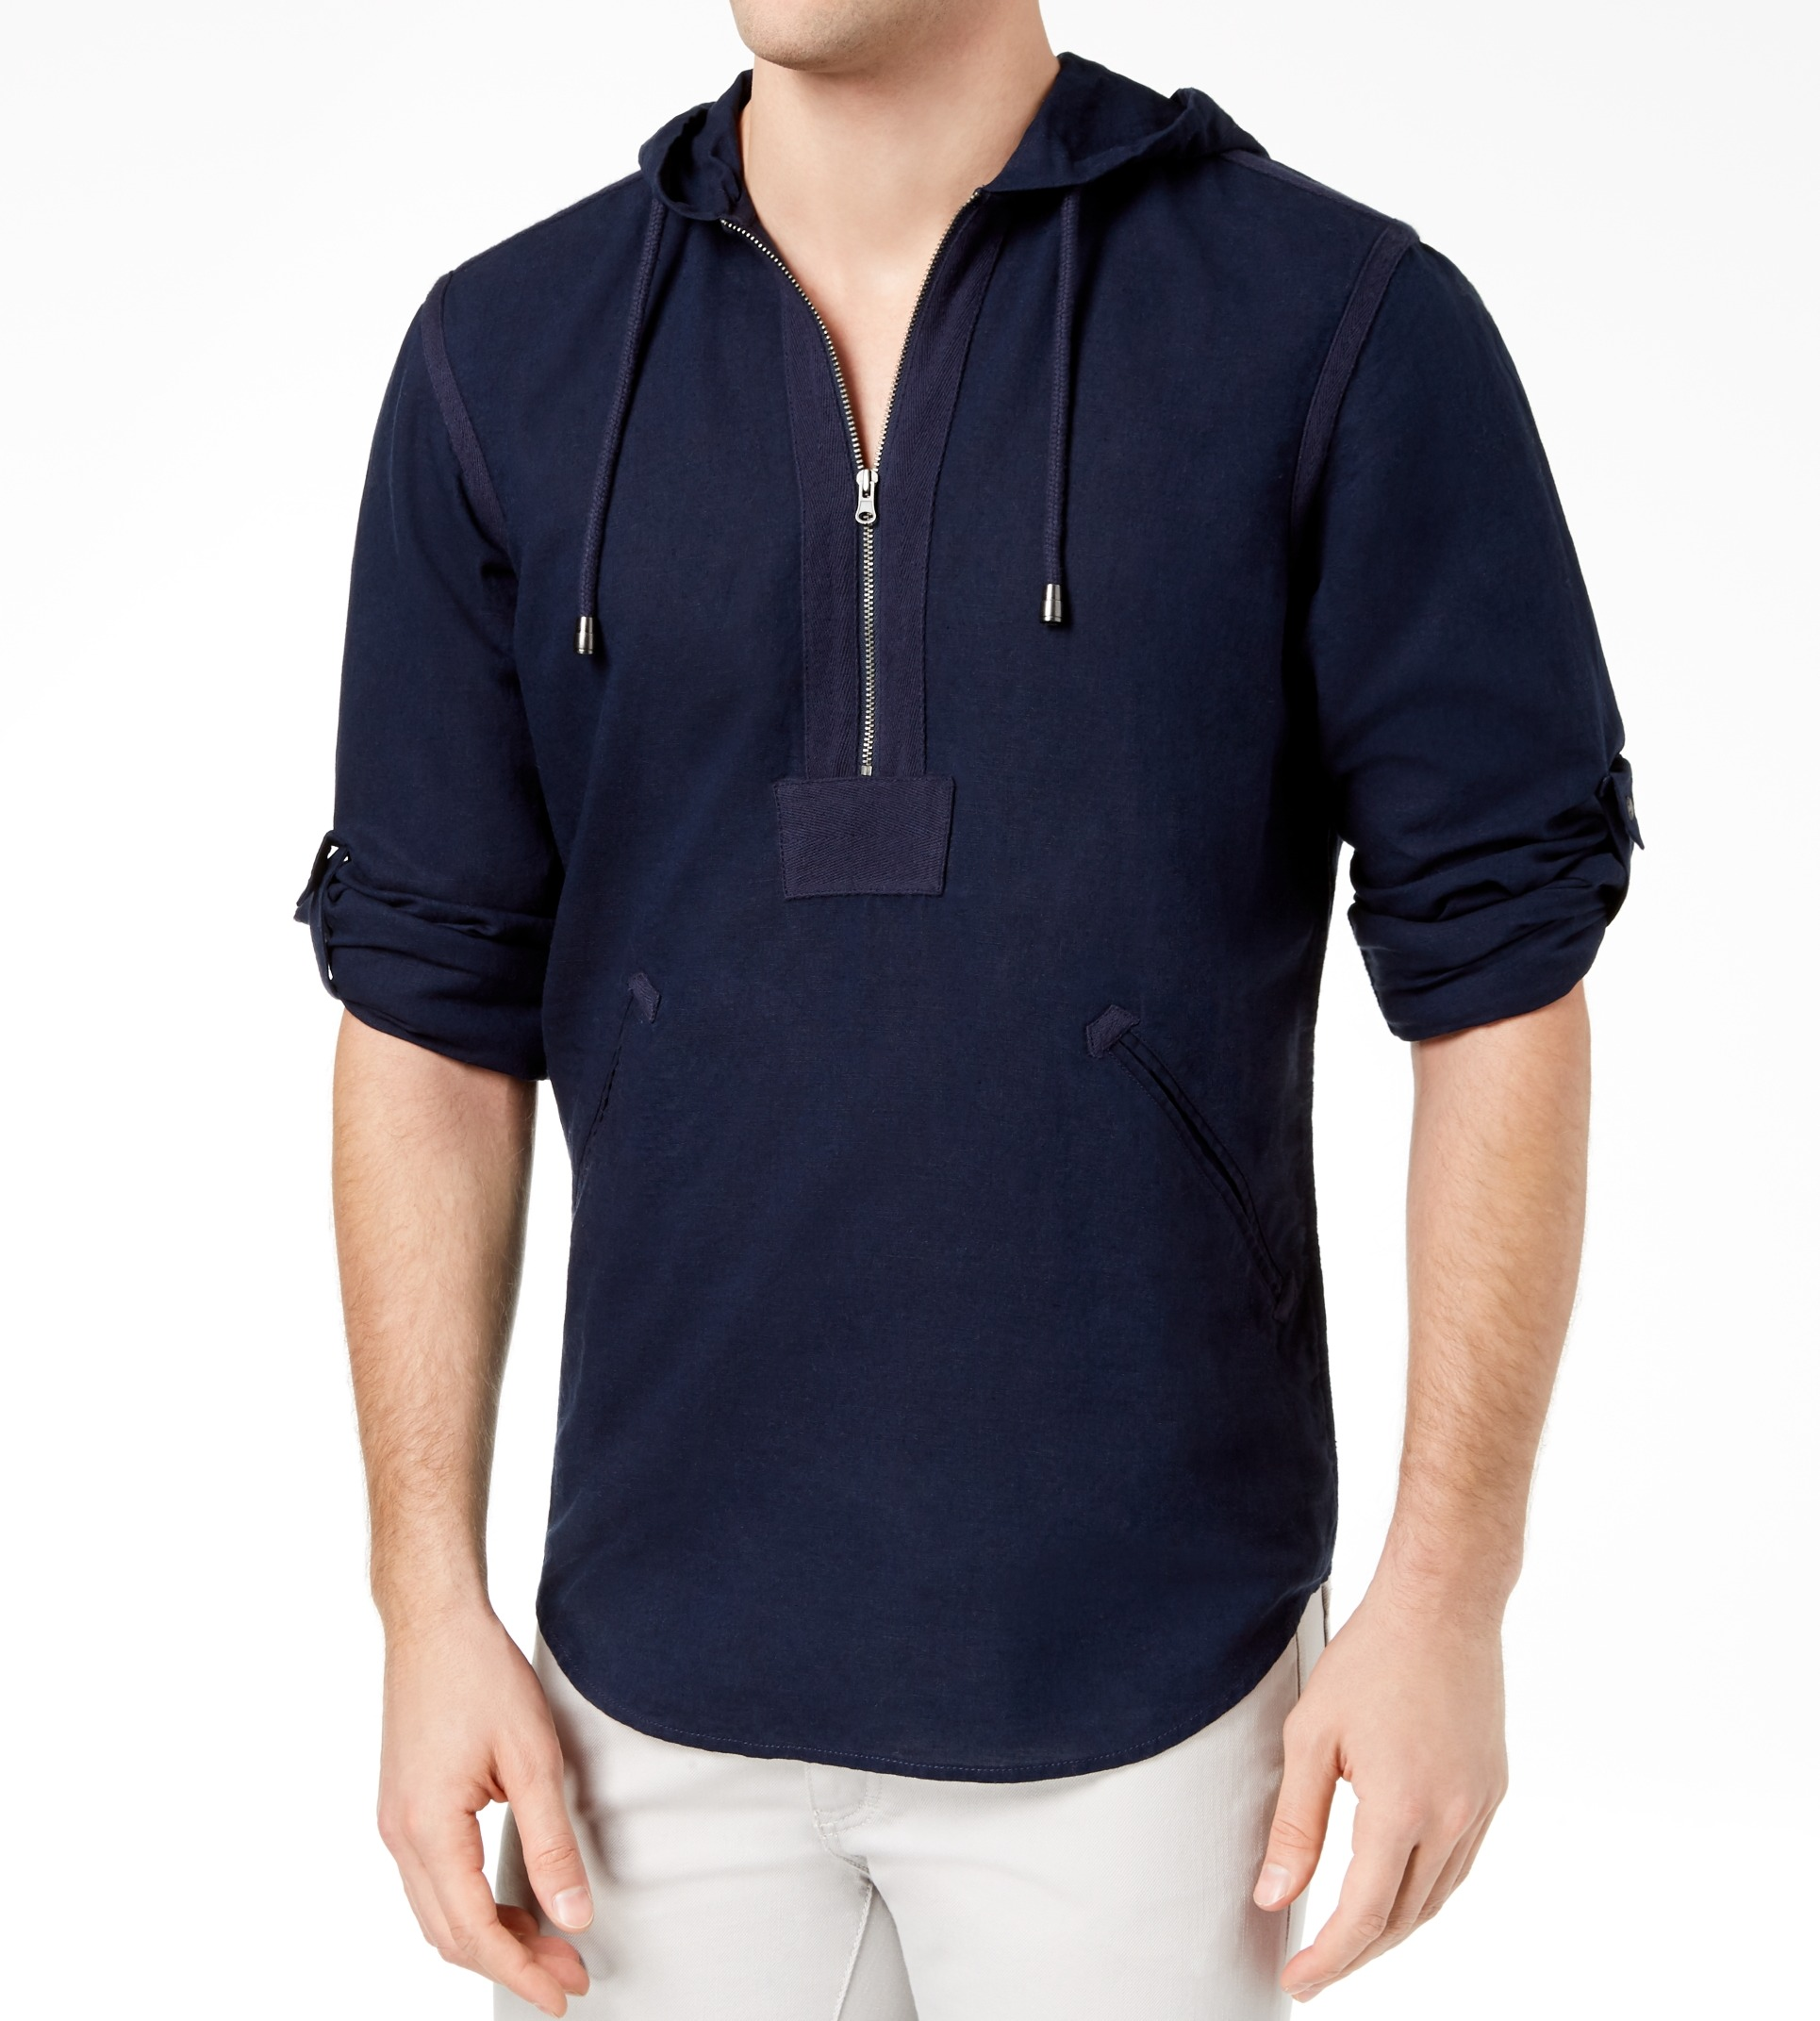 INC-NEW-Blue-Mens-Size-XL-Casual-Linen-Quarter-Zip-Shibui-Hoodie-Shirt